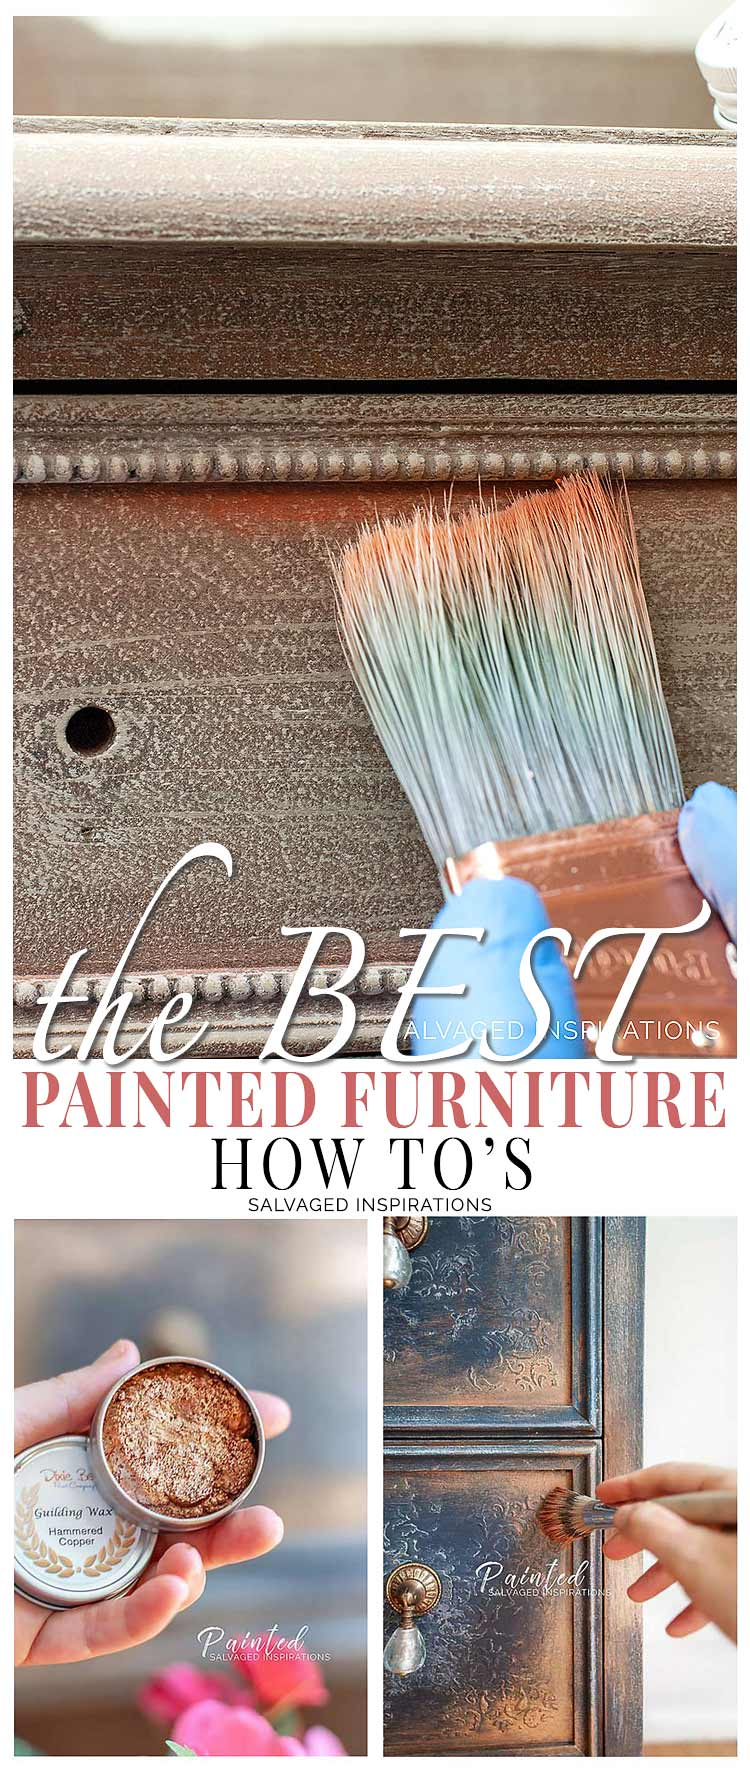 The Best Furniture Painting HowTo's 2018